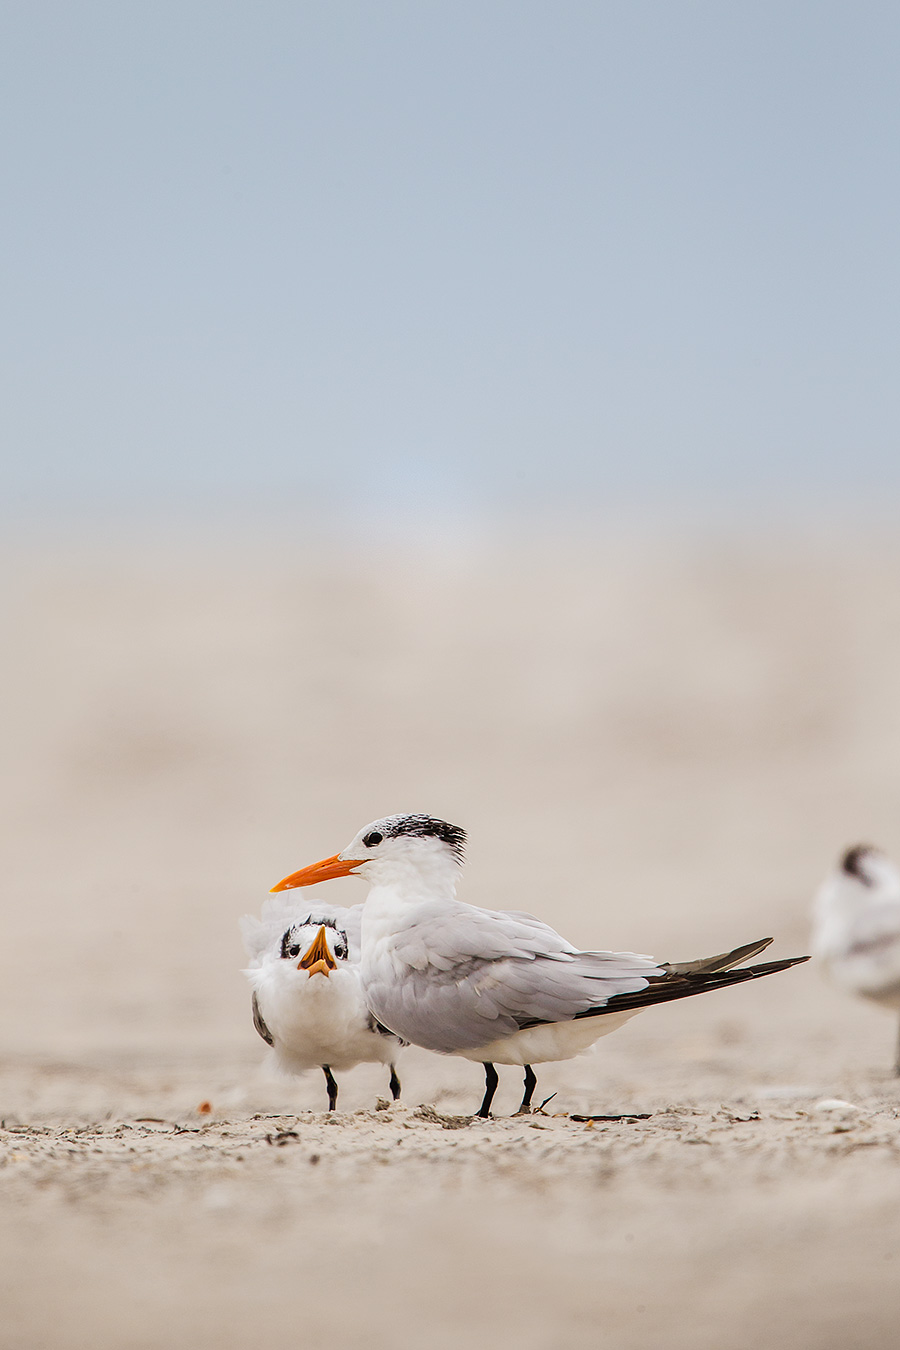 This young Royal Tern has to be the most annoying bird on the planet. If you thought Mac Daddy's Cheezitz (TM) were whiney, you should have seen this 'lil guy. The entire group kept going through great lengths to avoid him. His parent appeared mortified.